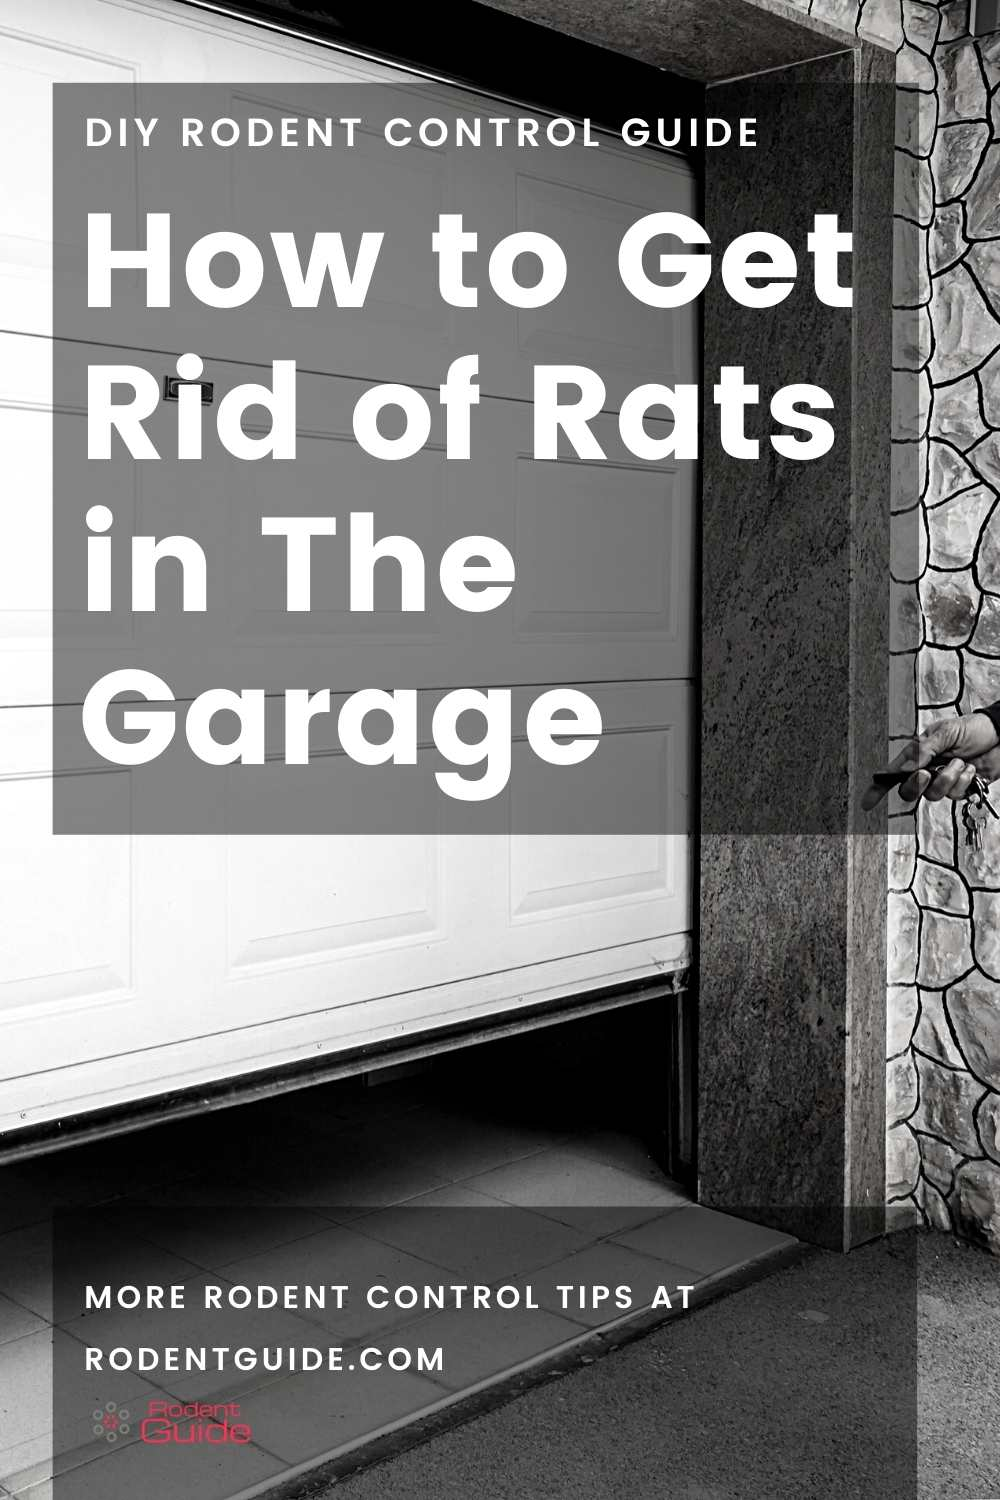 How to Get Rid of Rats in The Garage (1)